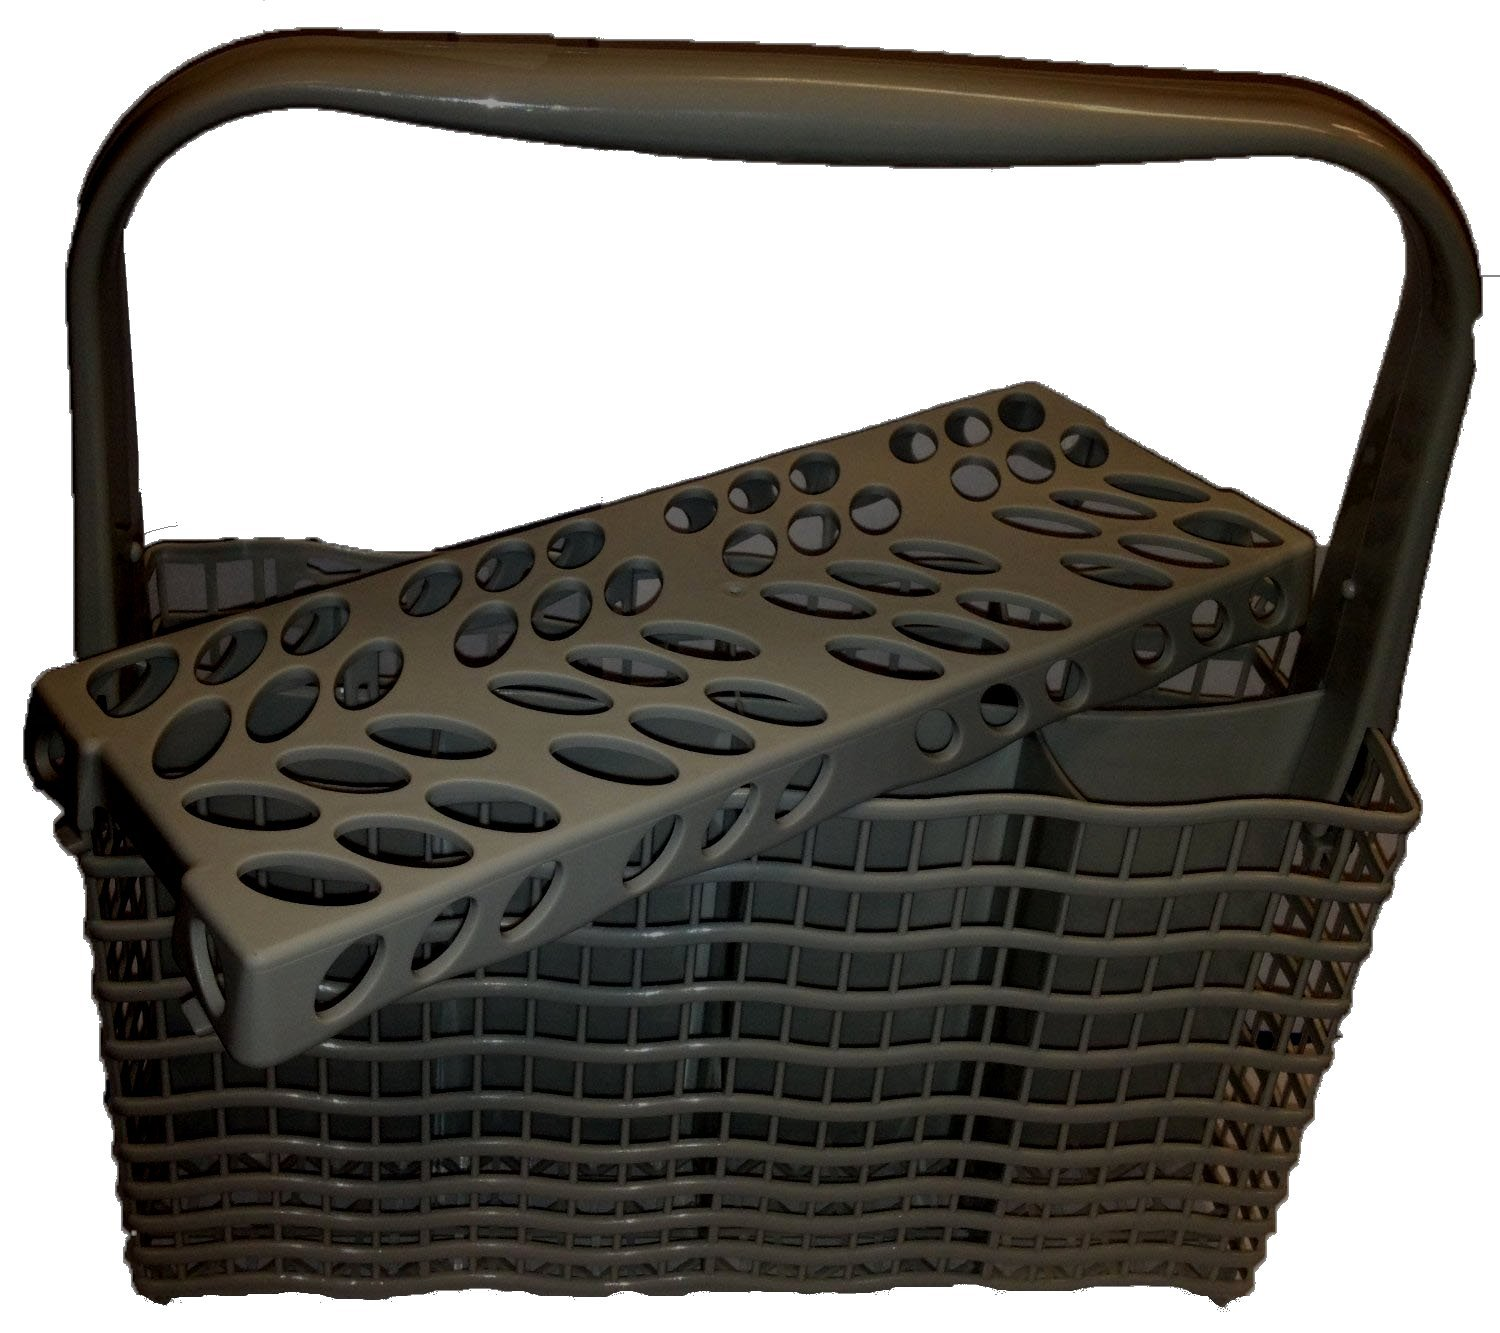 Dishwasher Replacement Slim Cutlery Basket CB1524746102T ELECTROLUX